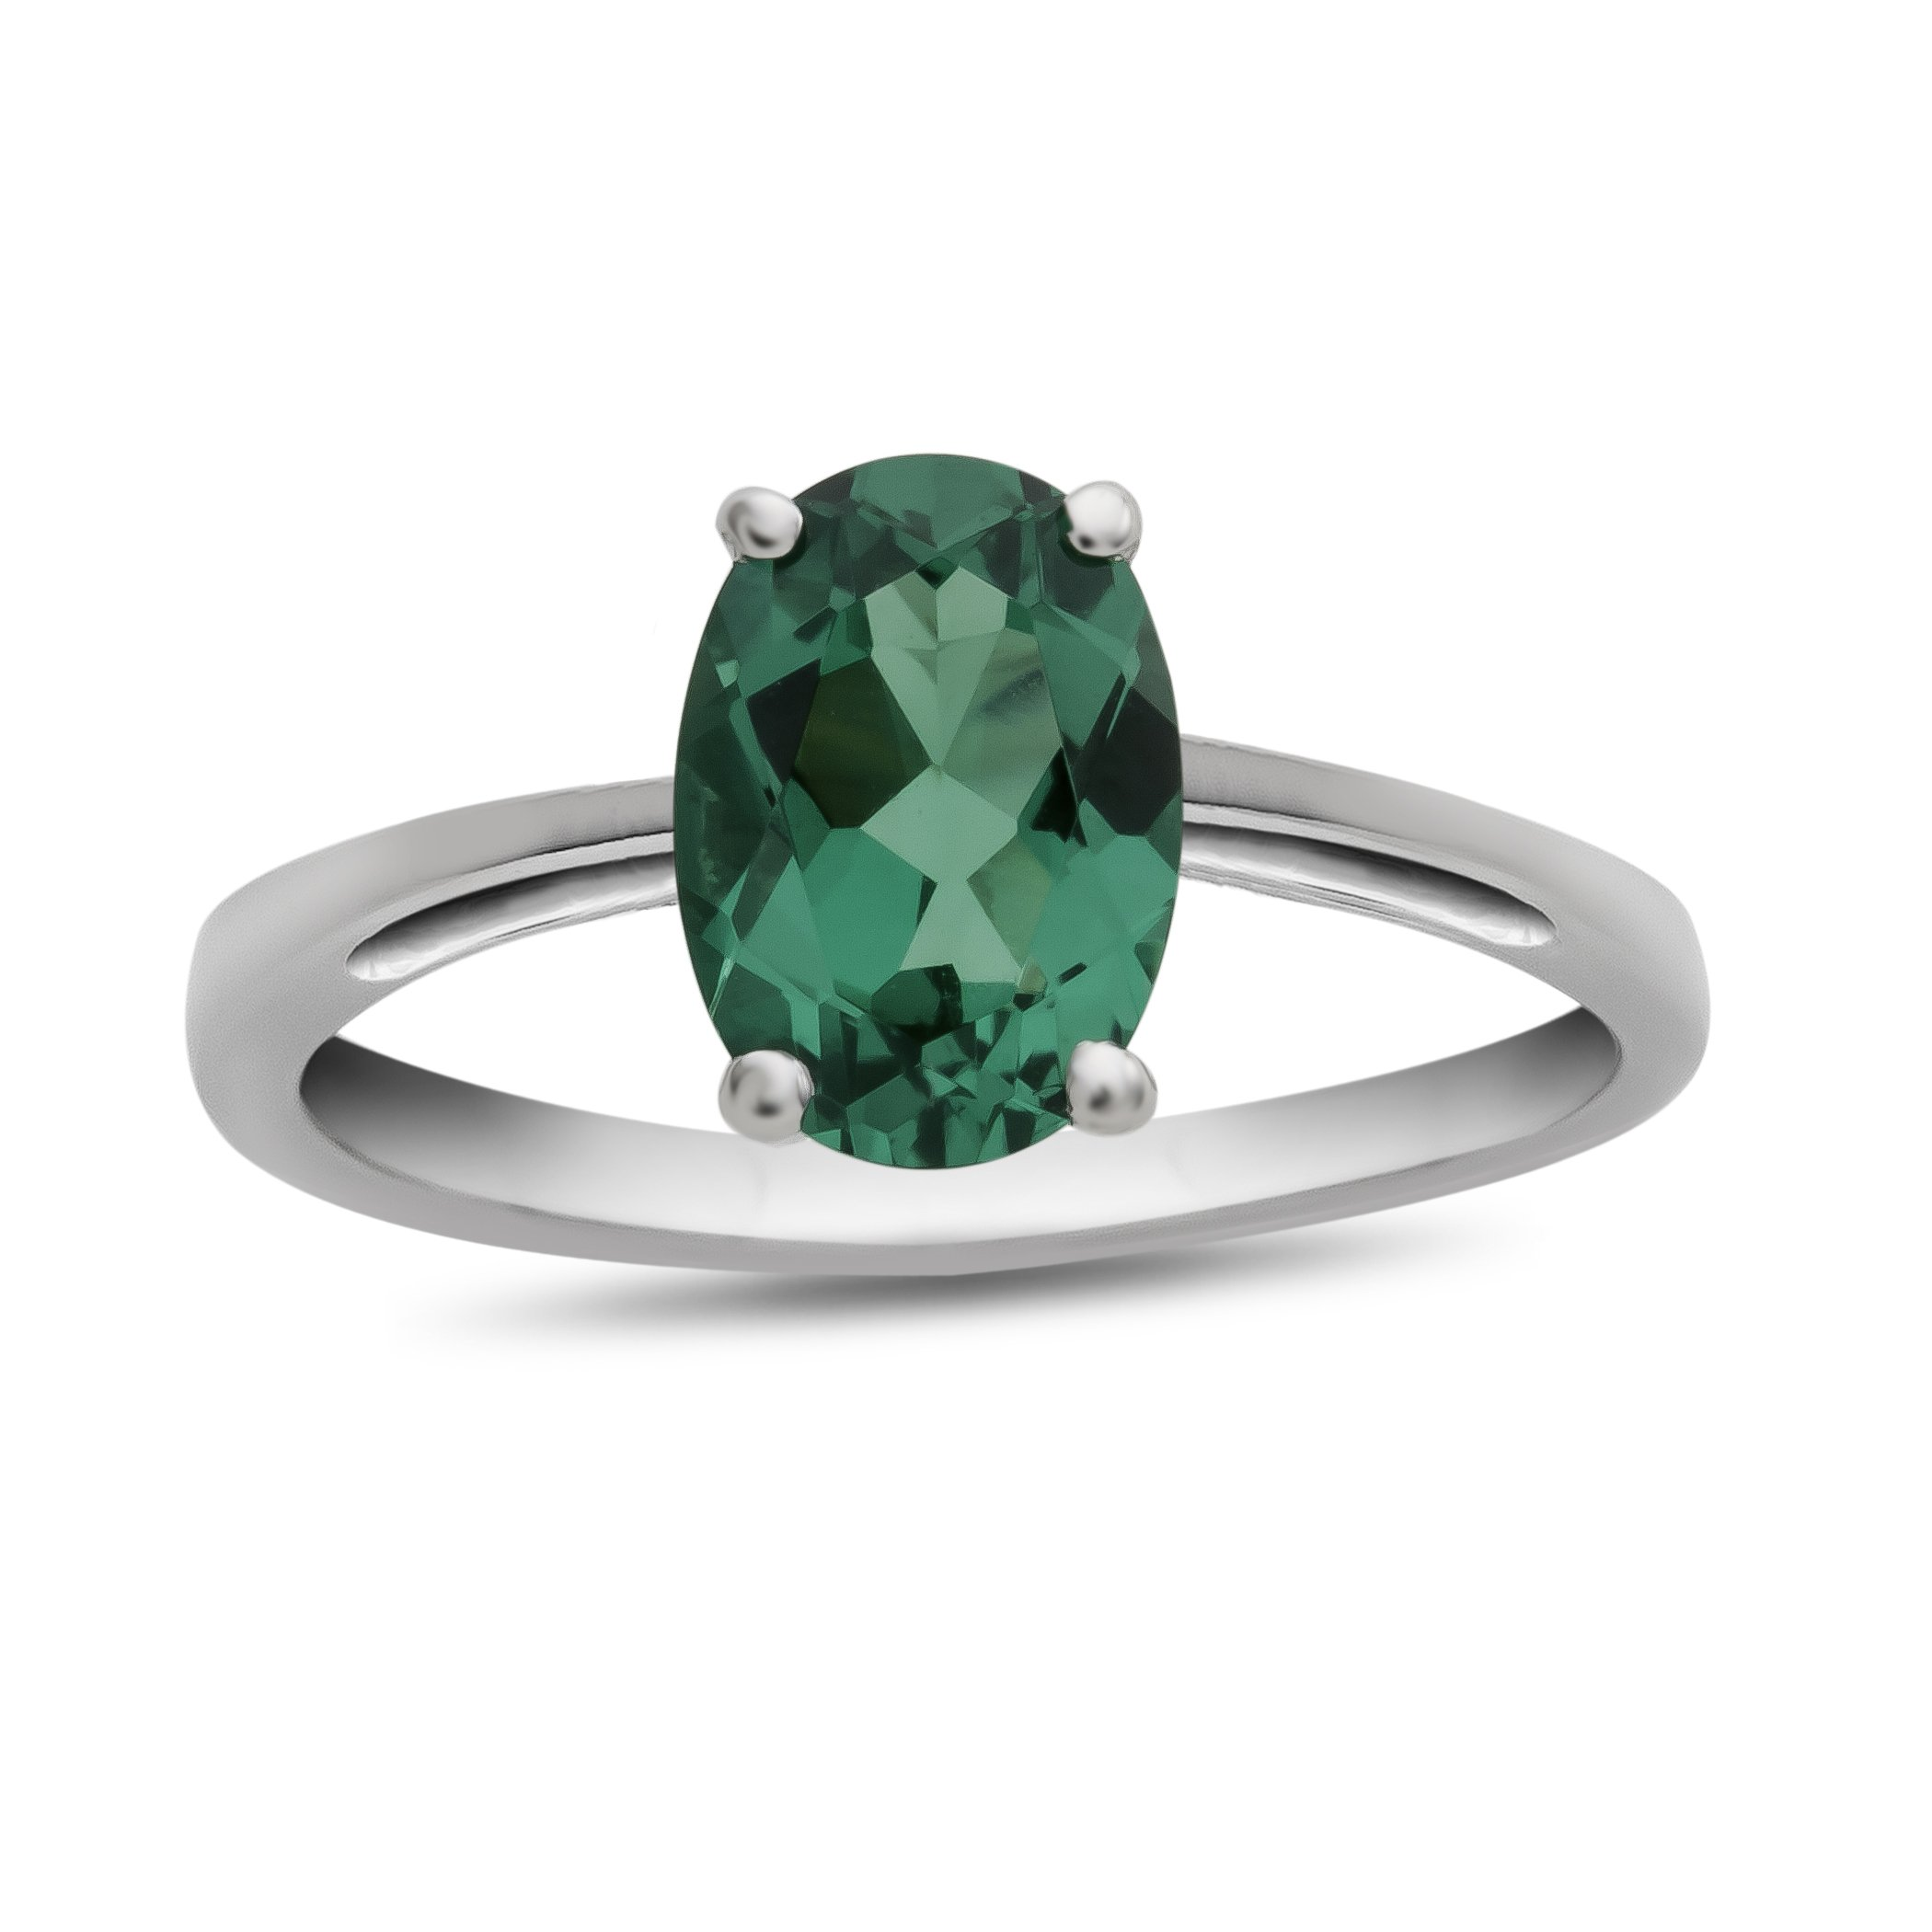 10k White Gold 7x5mm Oval Simulated Emerald Ring Size 5